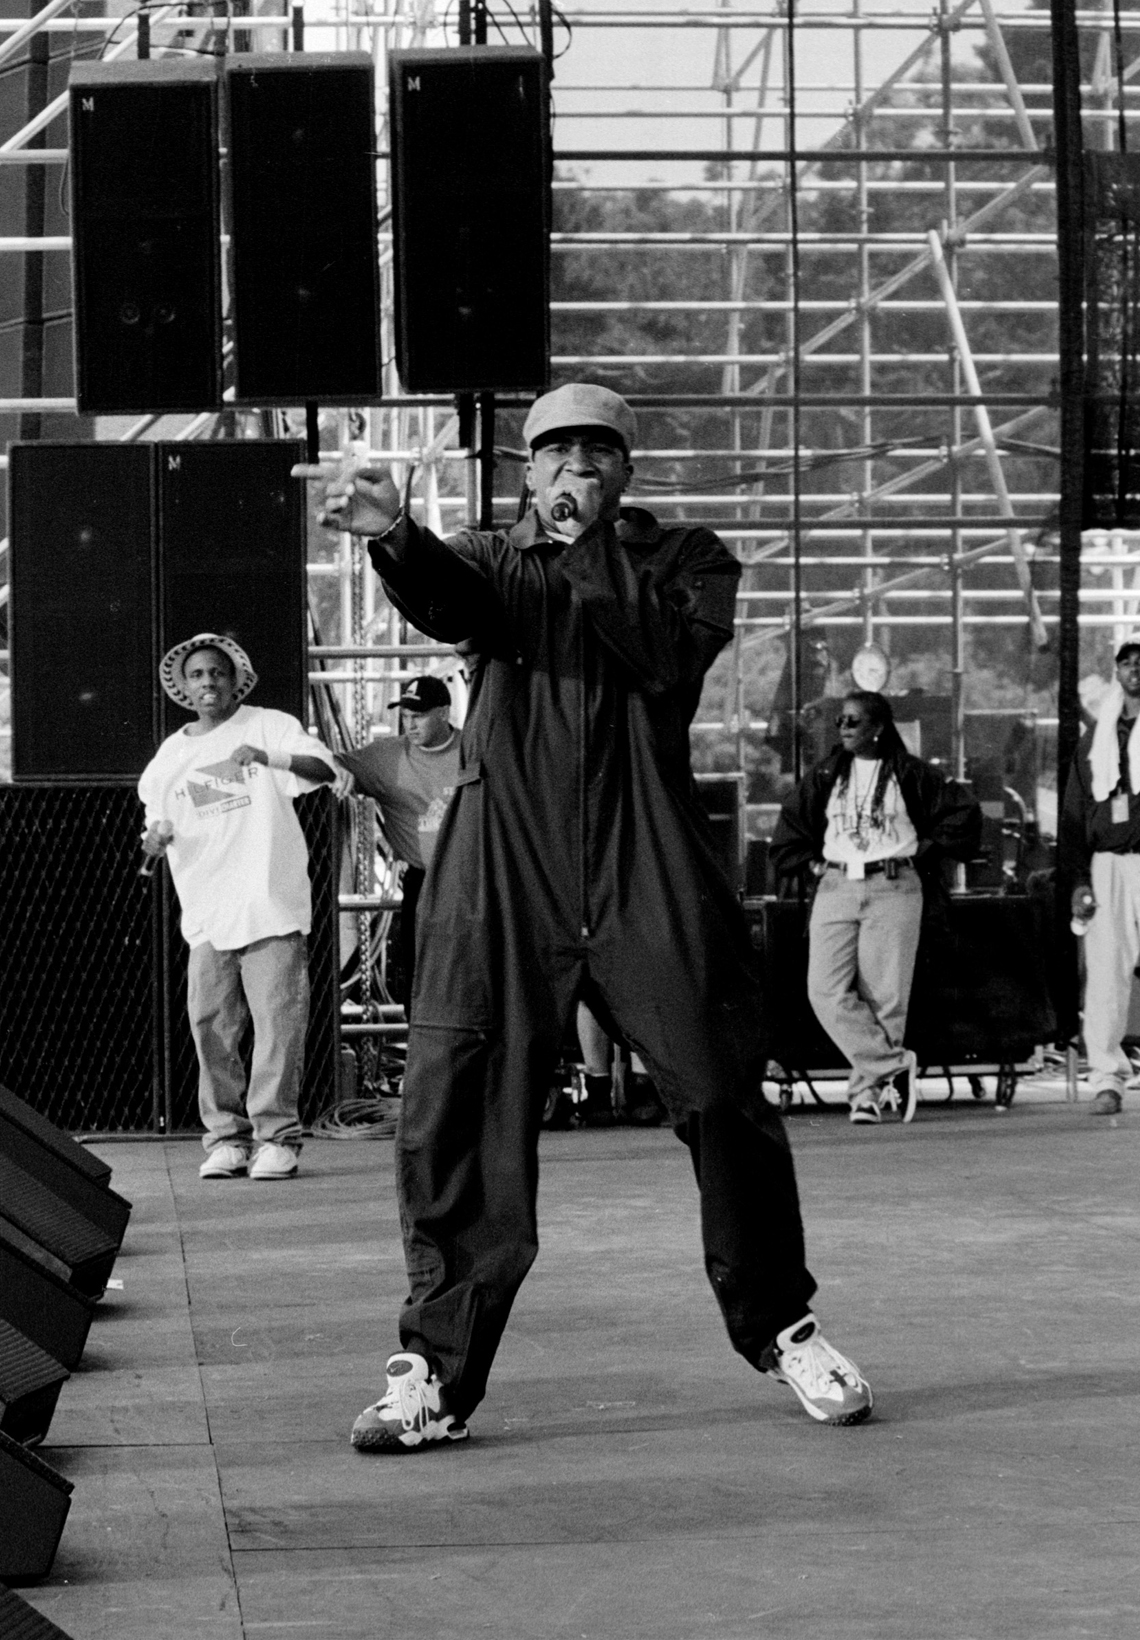 Q-Tip and Consequence, Tibetan Freedom Concert, SF, CA, 6/15/96